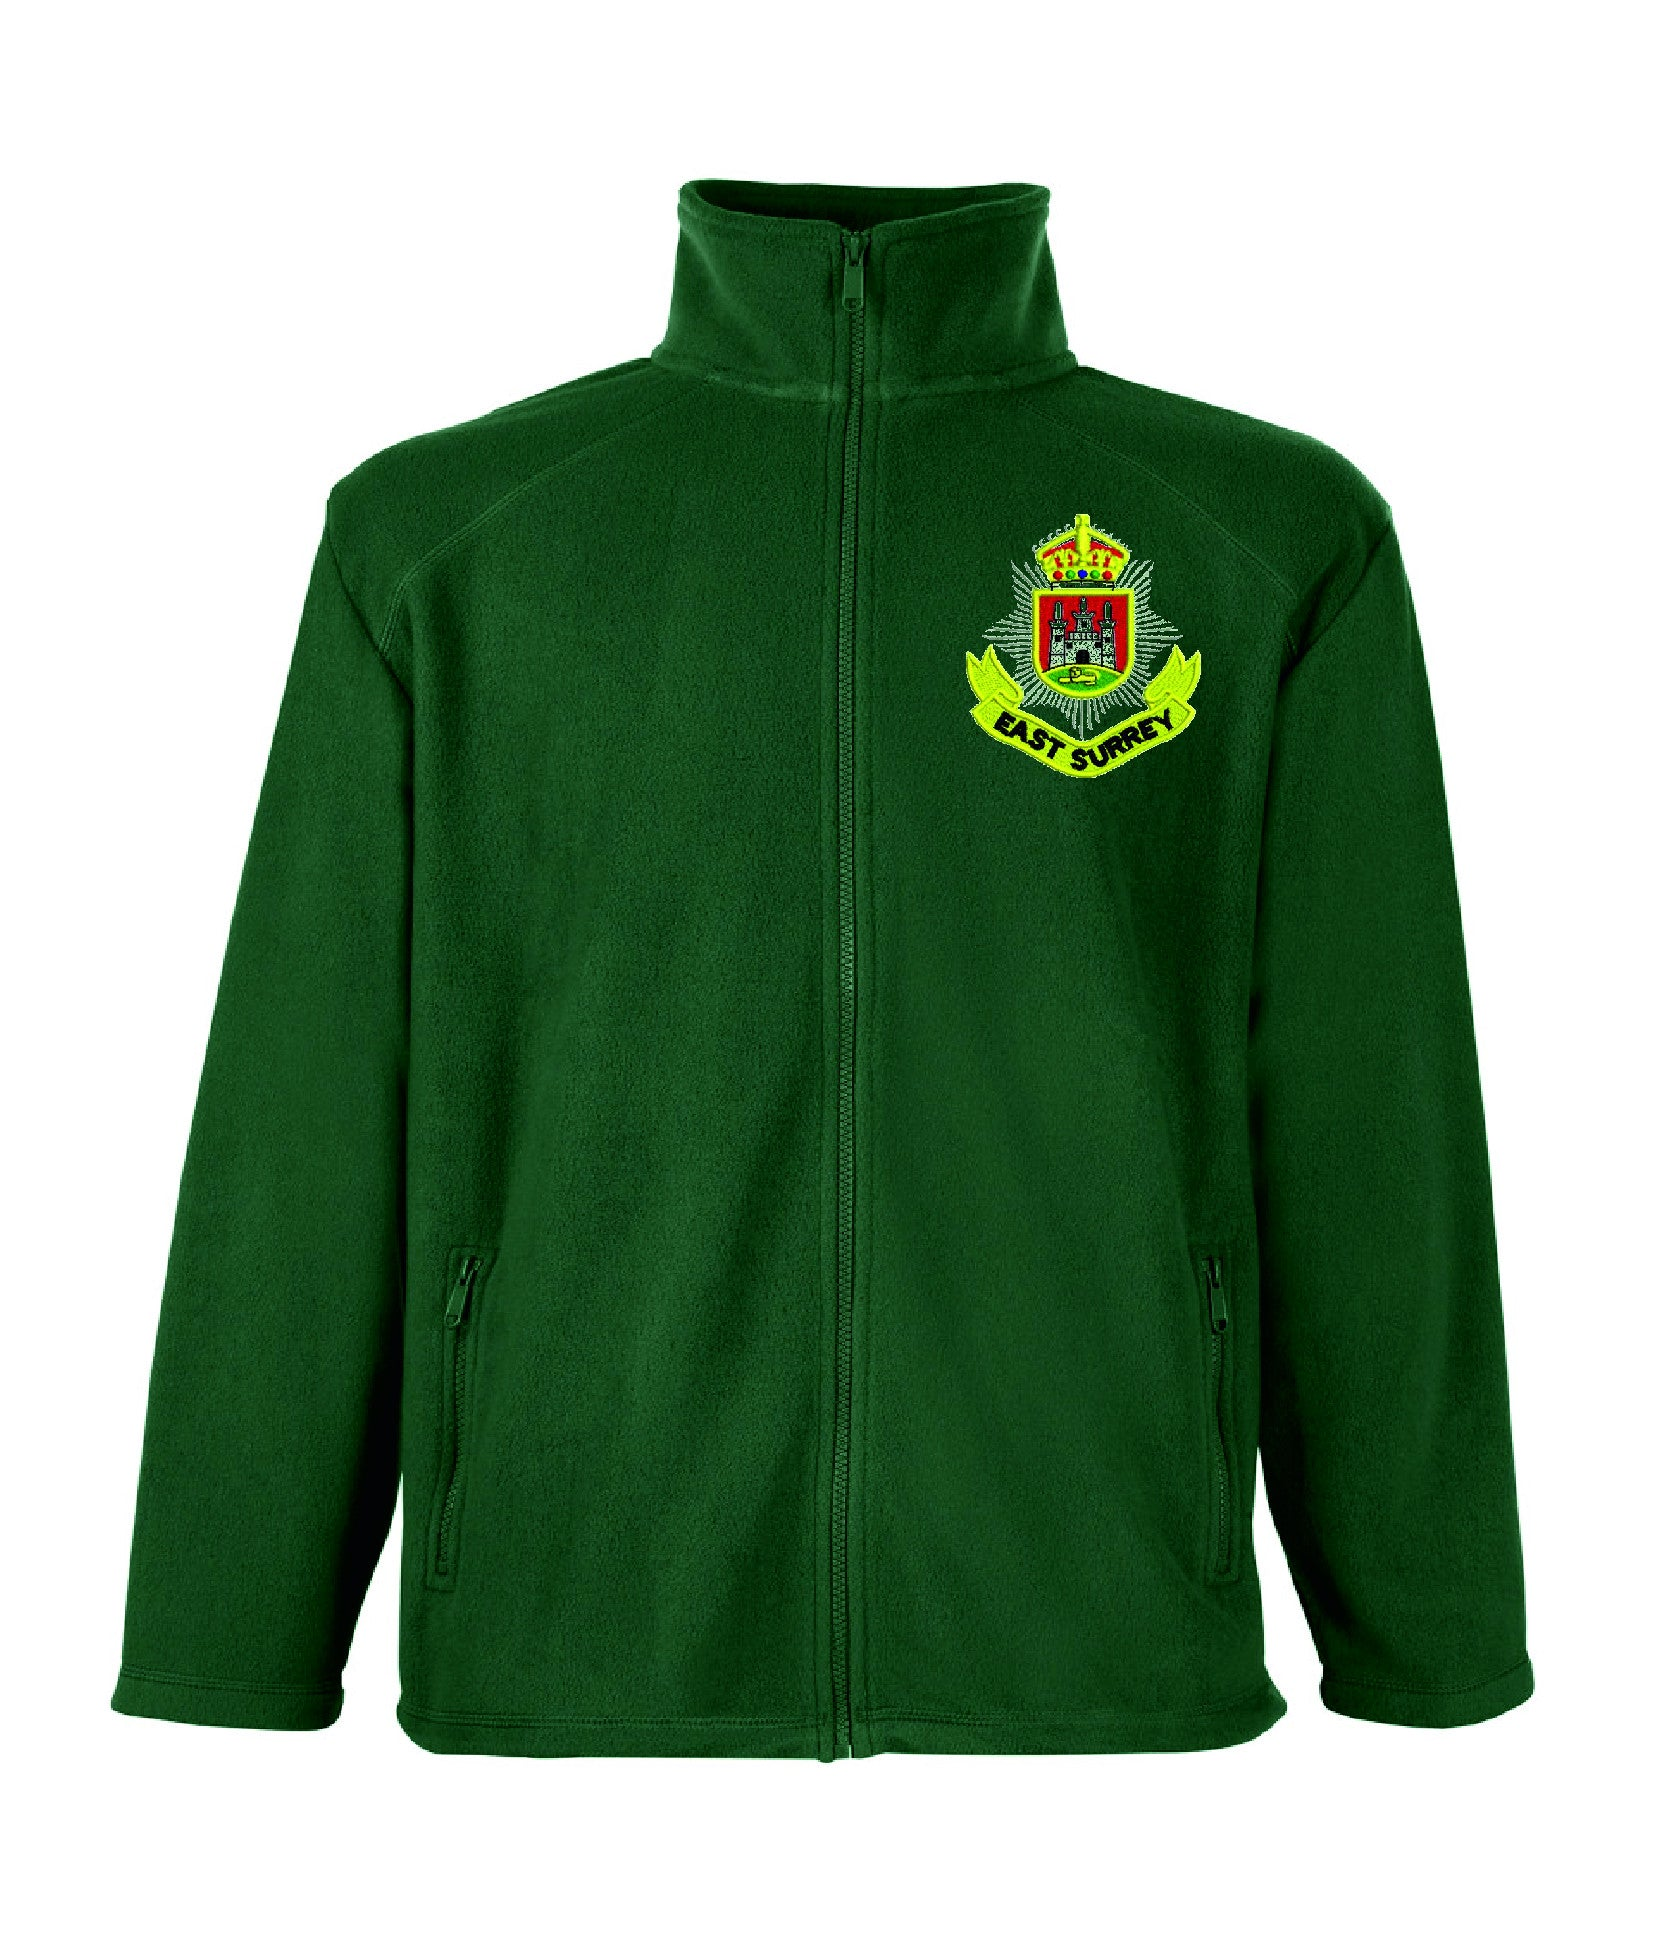 East Surrey Regiment Fleece